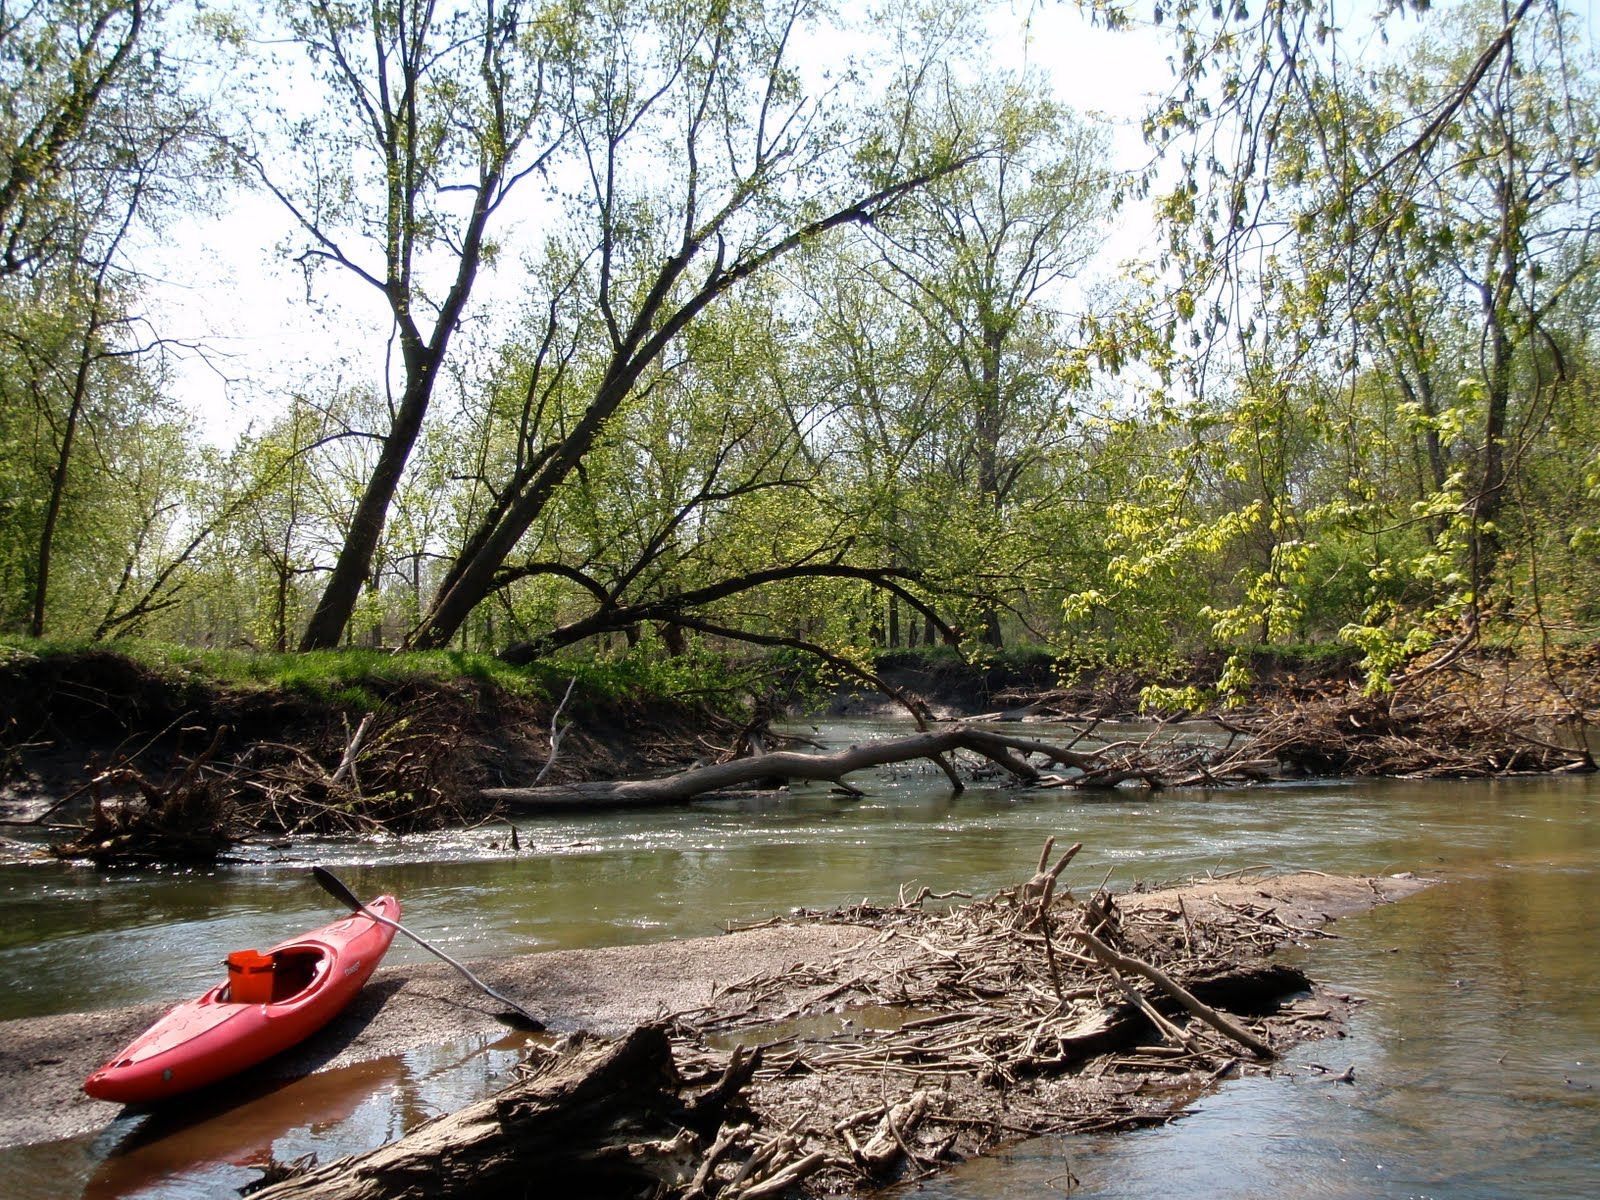 Kayaking Mackinaw River, IL Favorite Places & Spaces